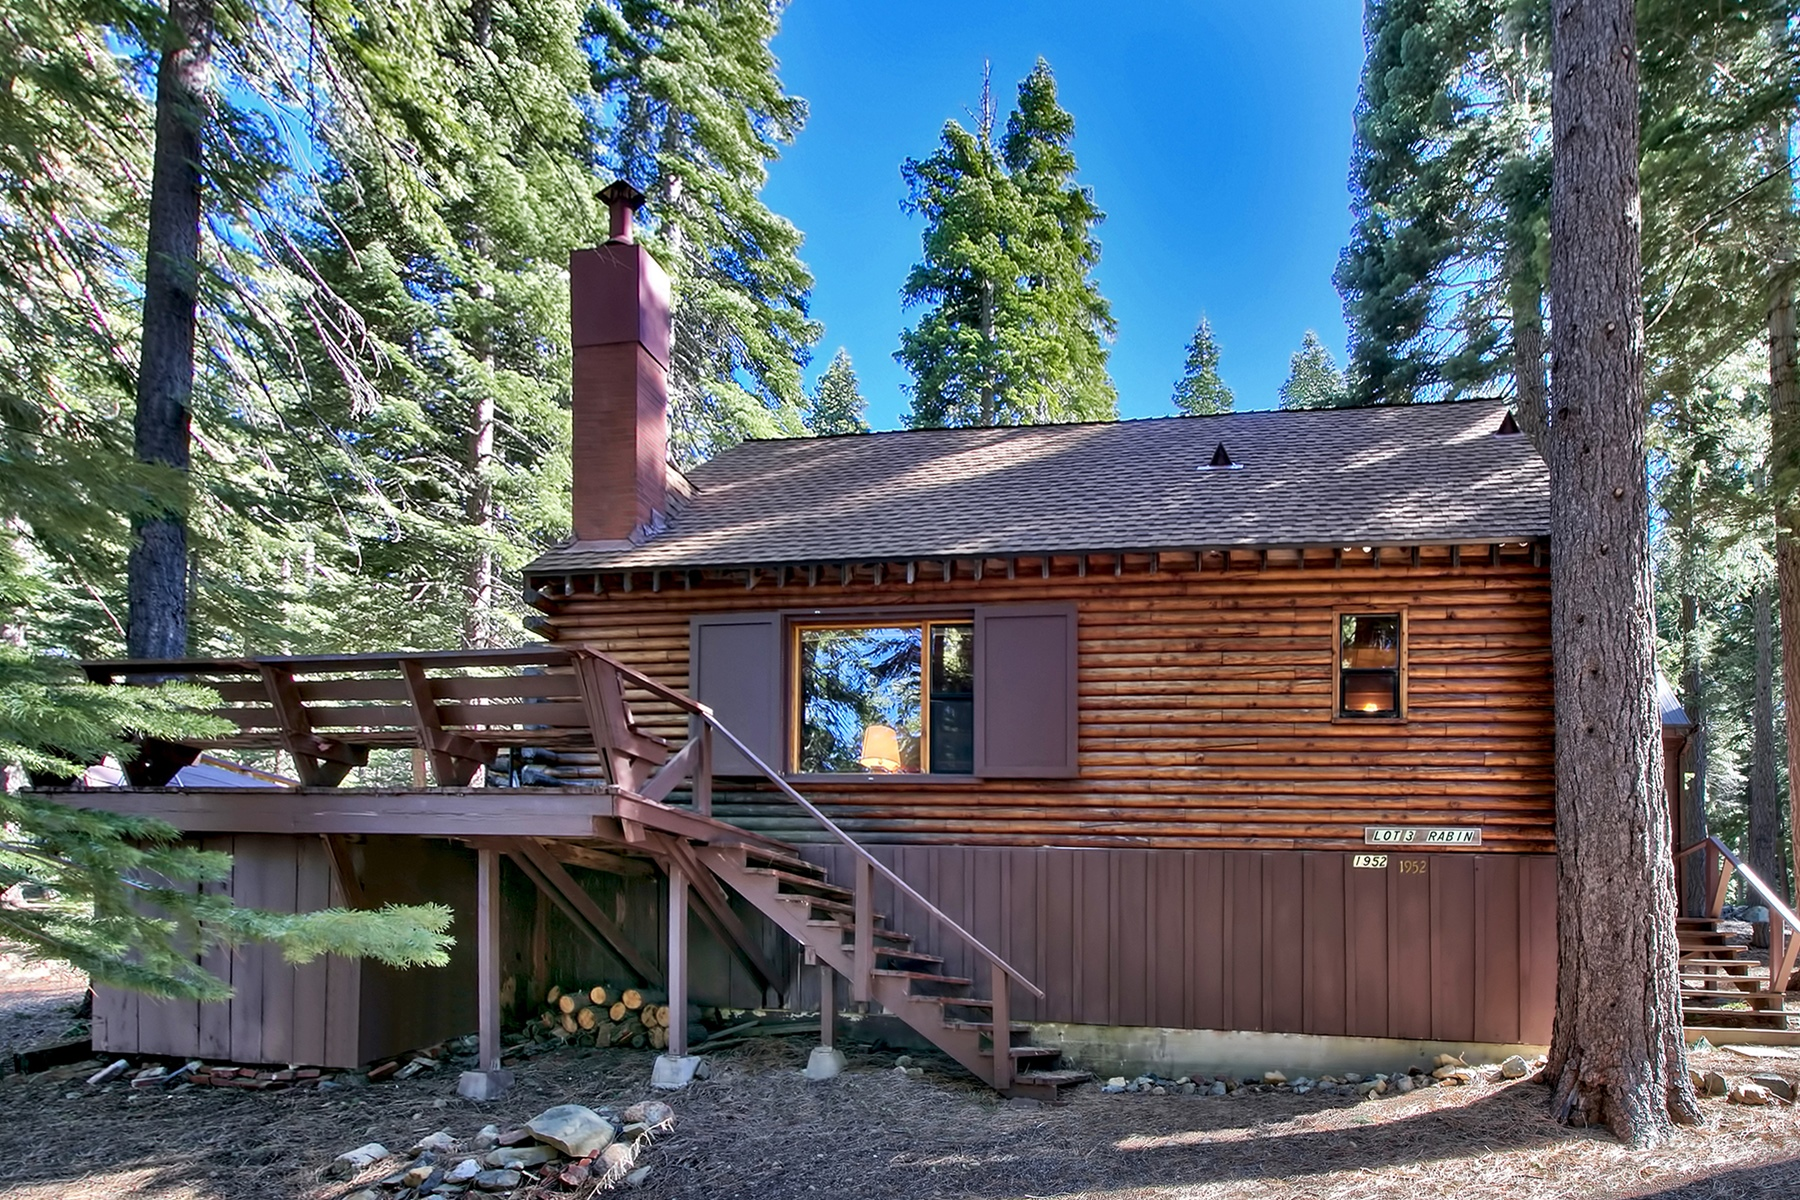 Single Family Home for Active at 1952 Spring Creek 1952 Spring Creek Road South Lake Tahoe, California 96150 United States